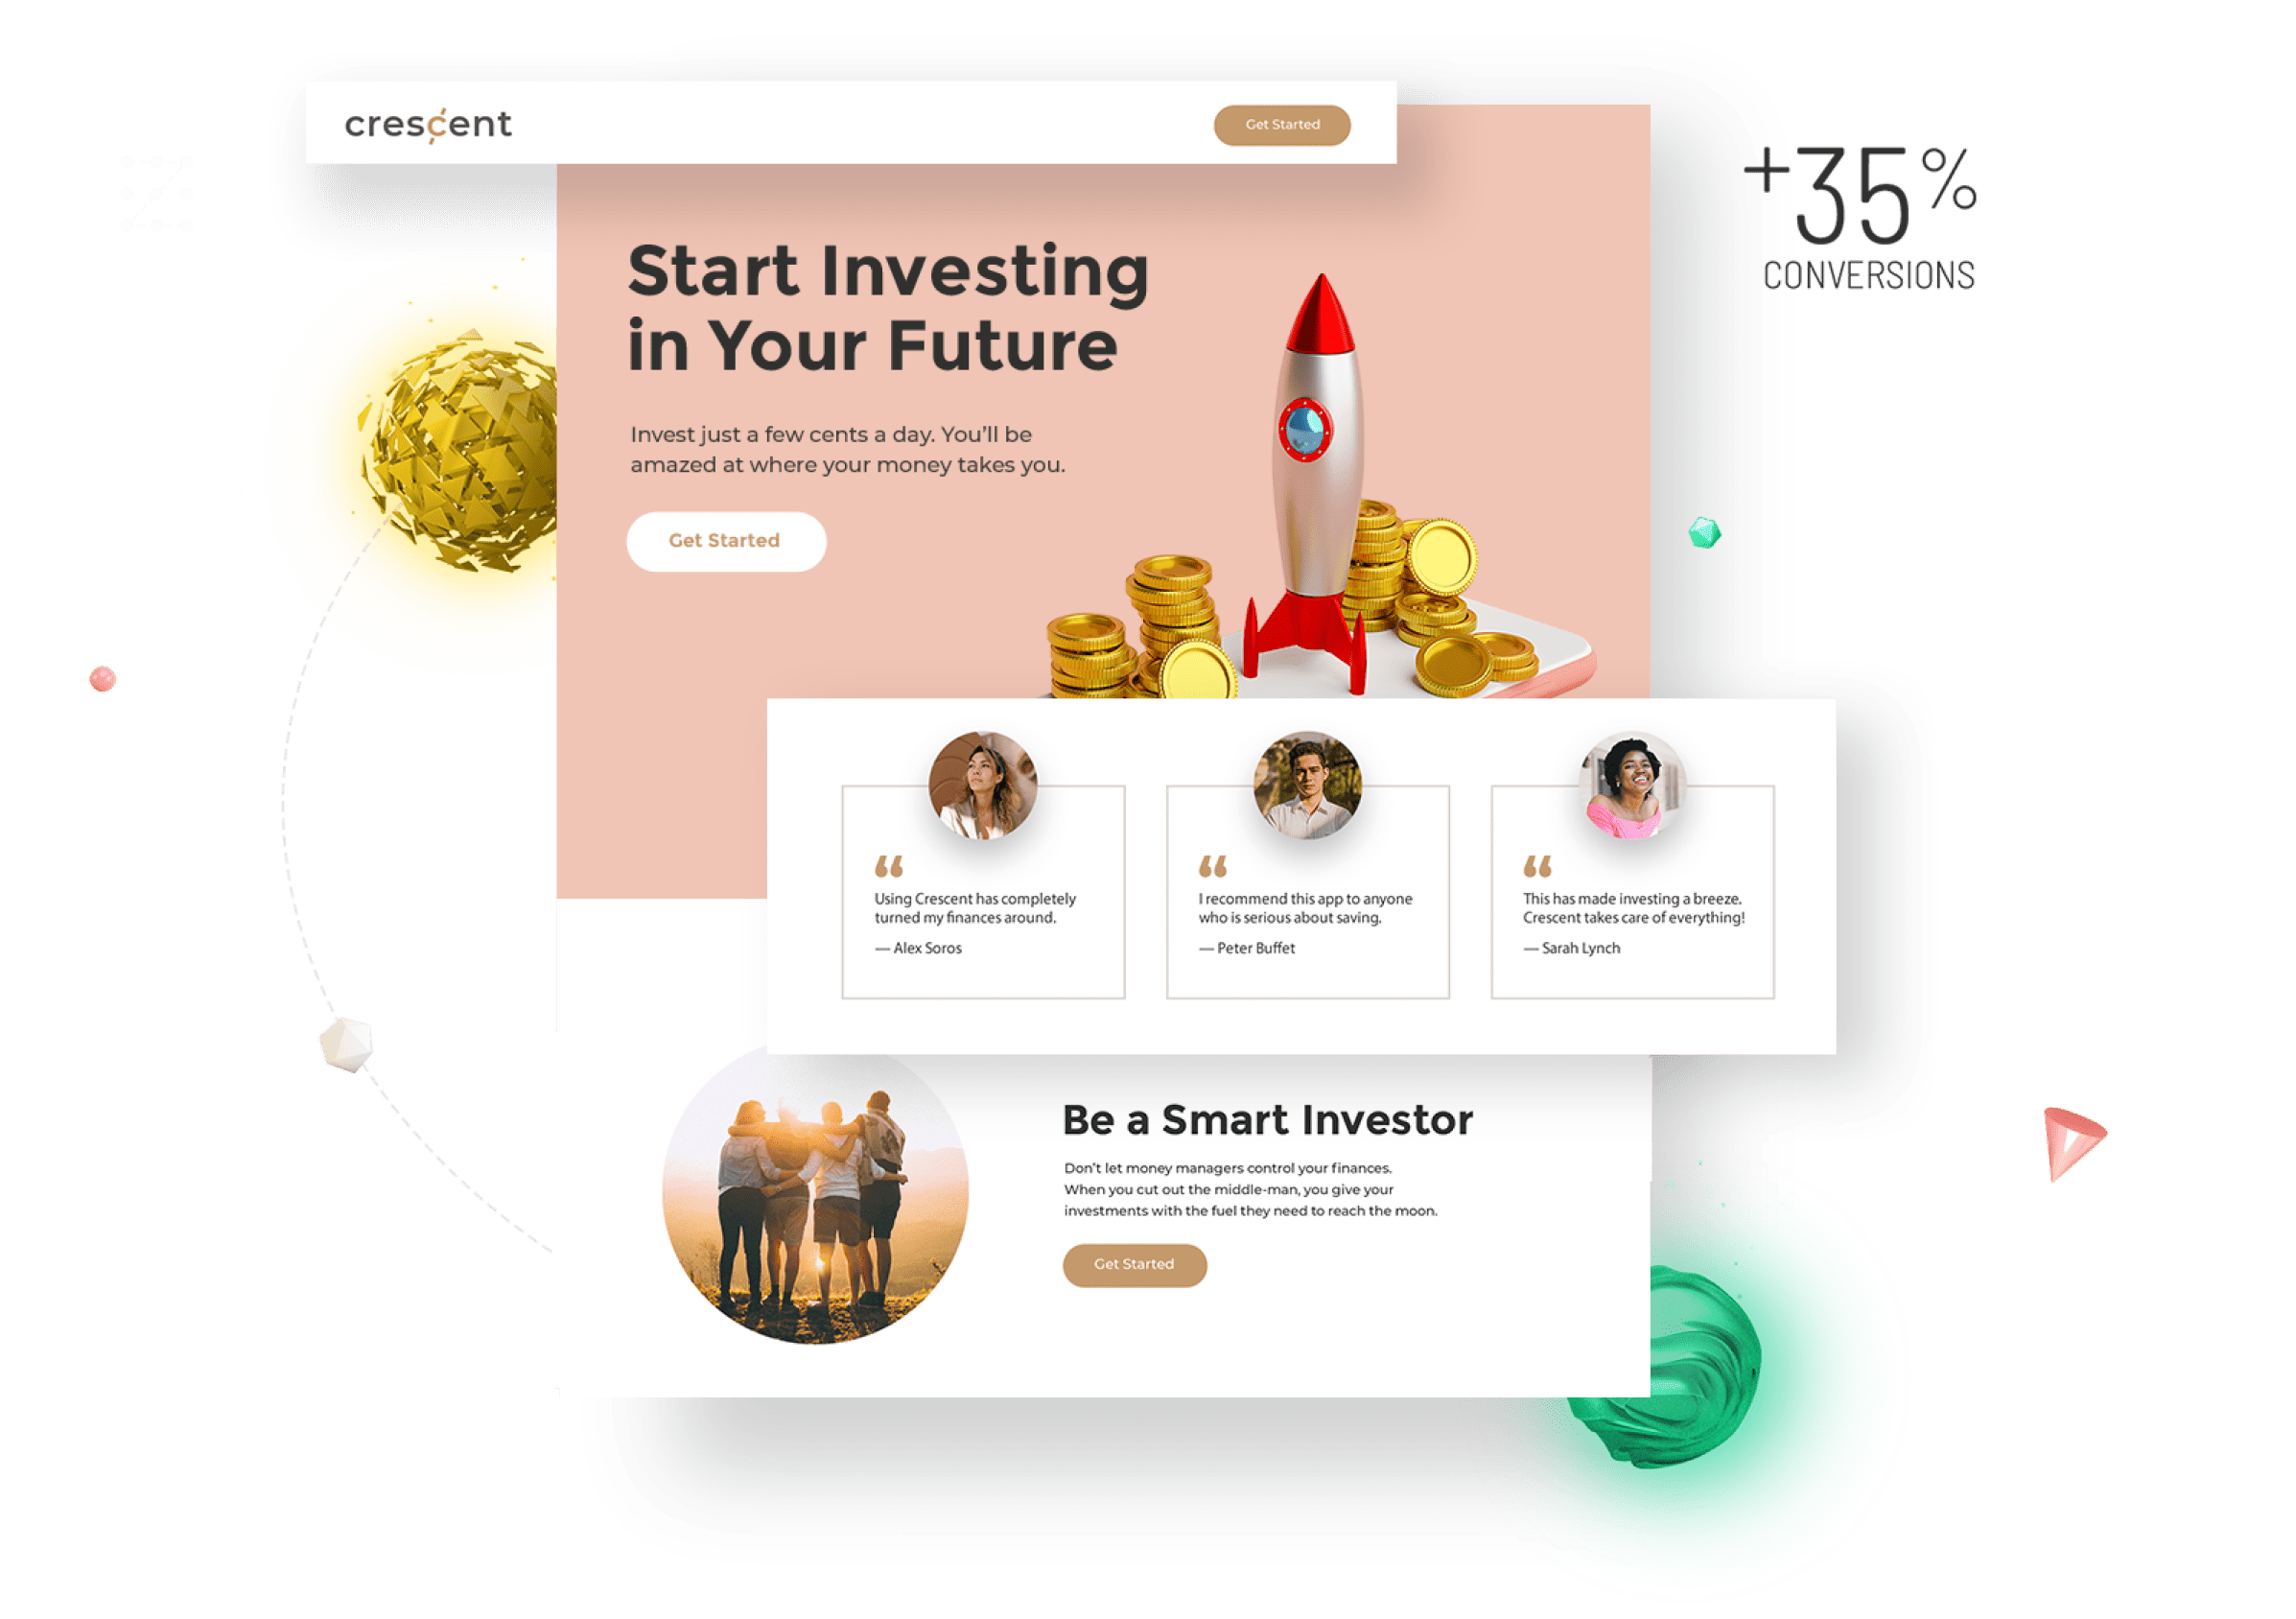 Example landing page image